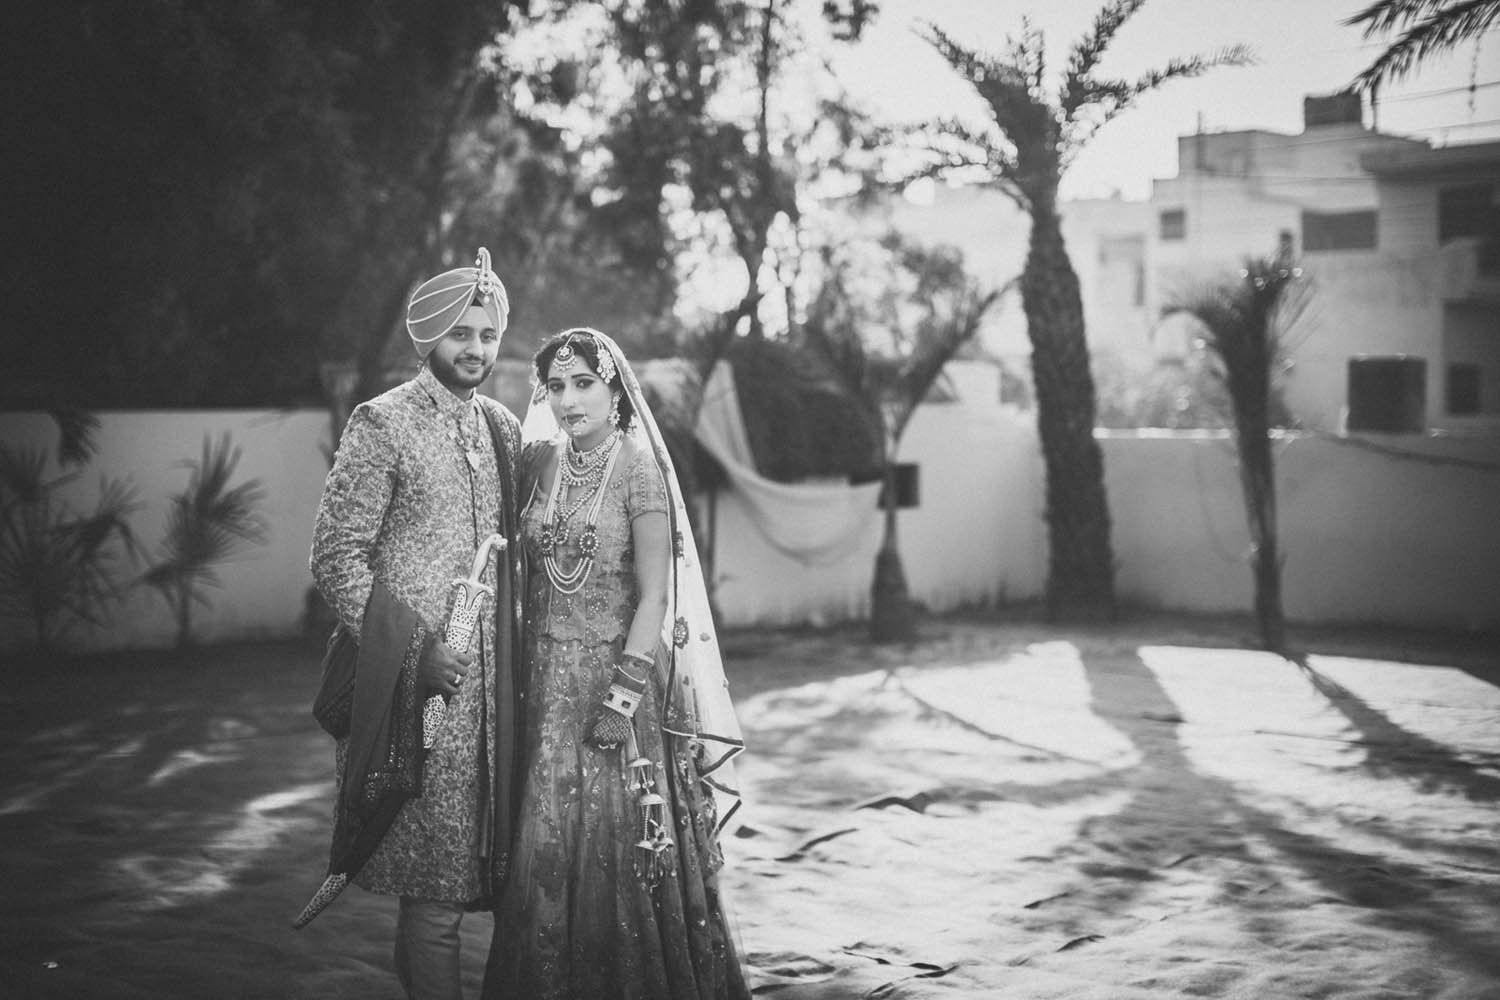 punjab_wedding71.jpg